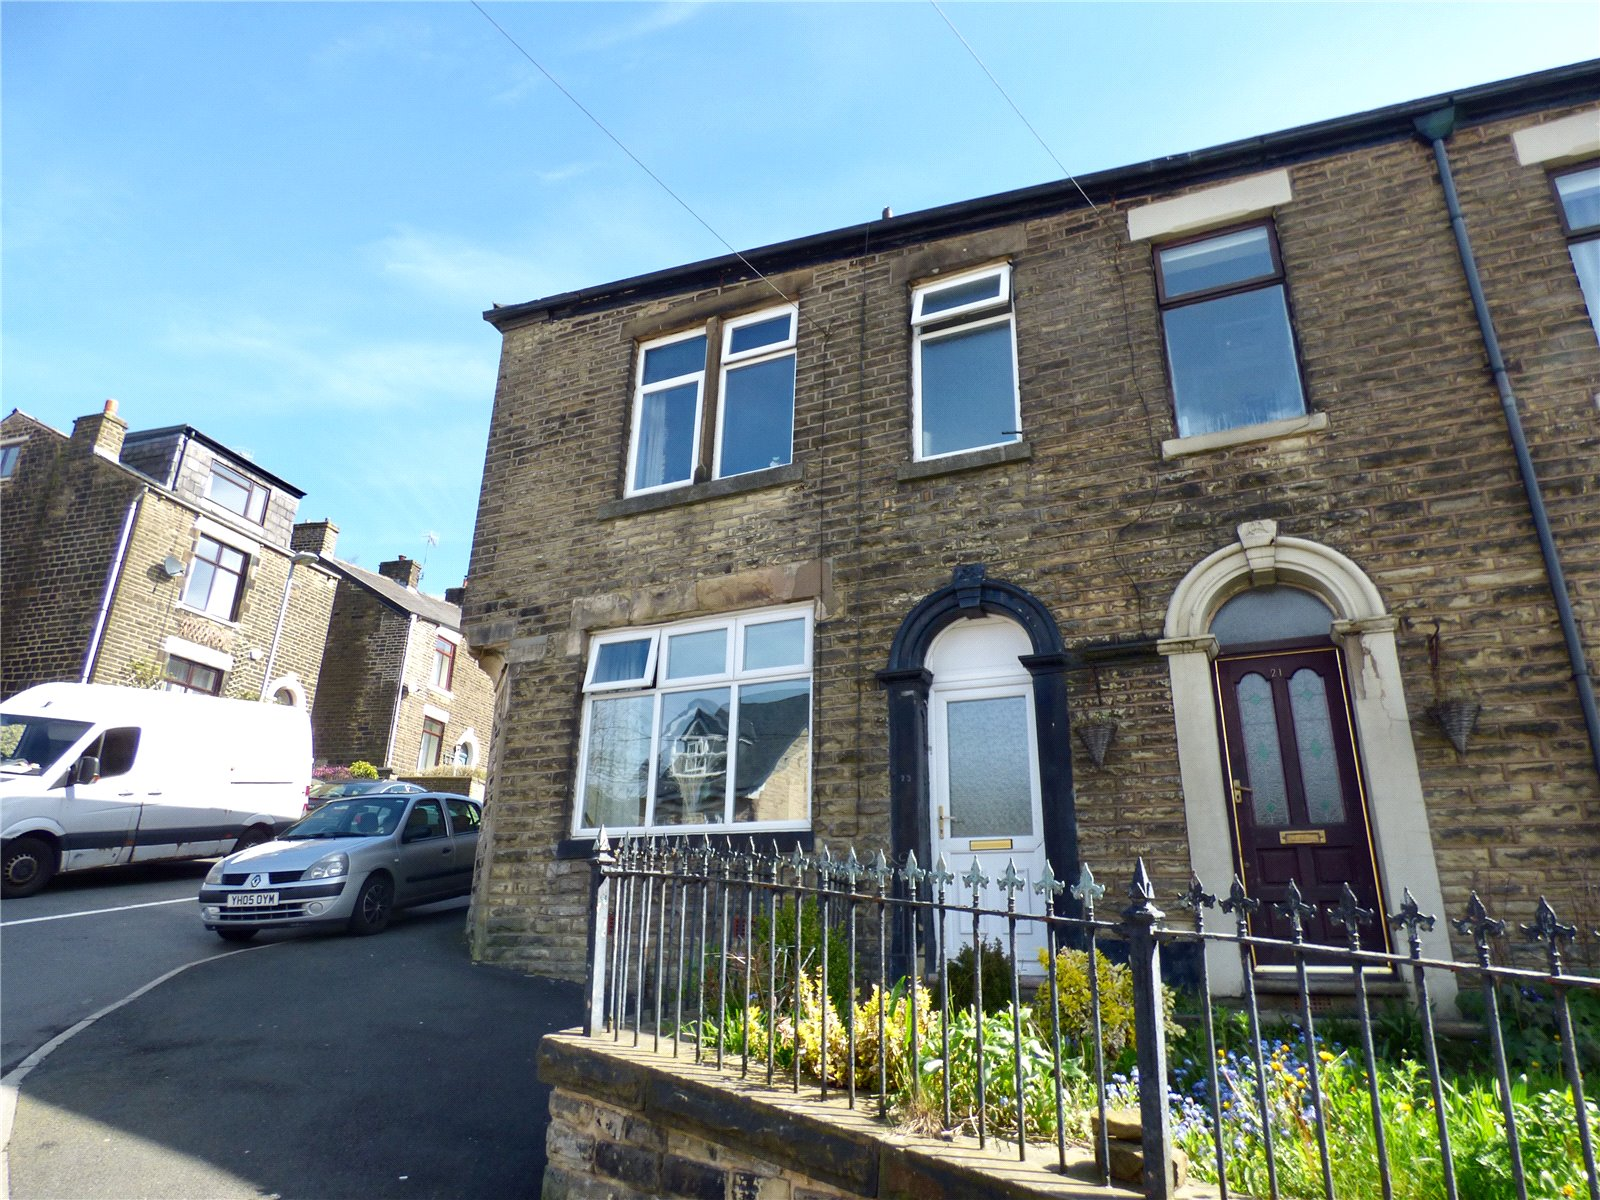 3 Bedrooms End Of Terrace House for sale in Lees Road, Mossley, Ashton-under-Lyne, Greater Manchester, OL5